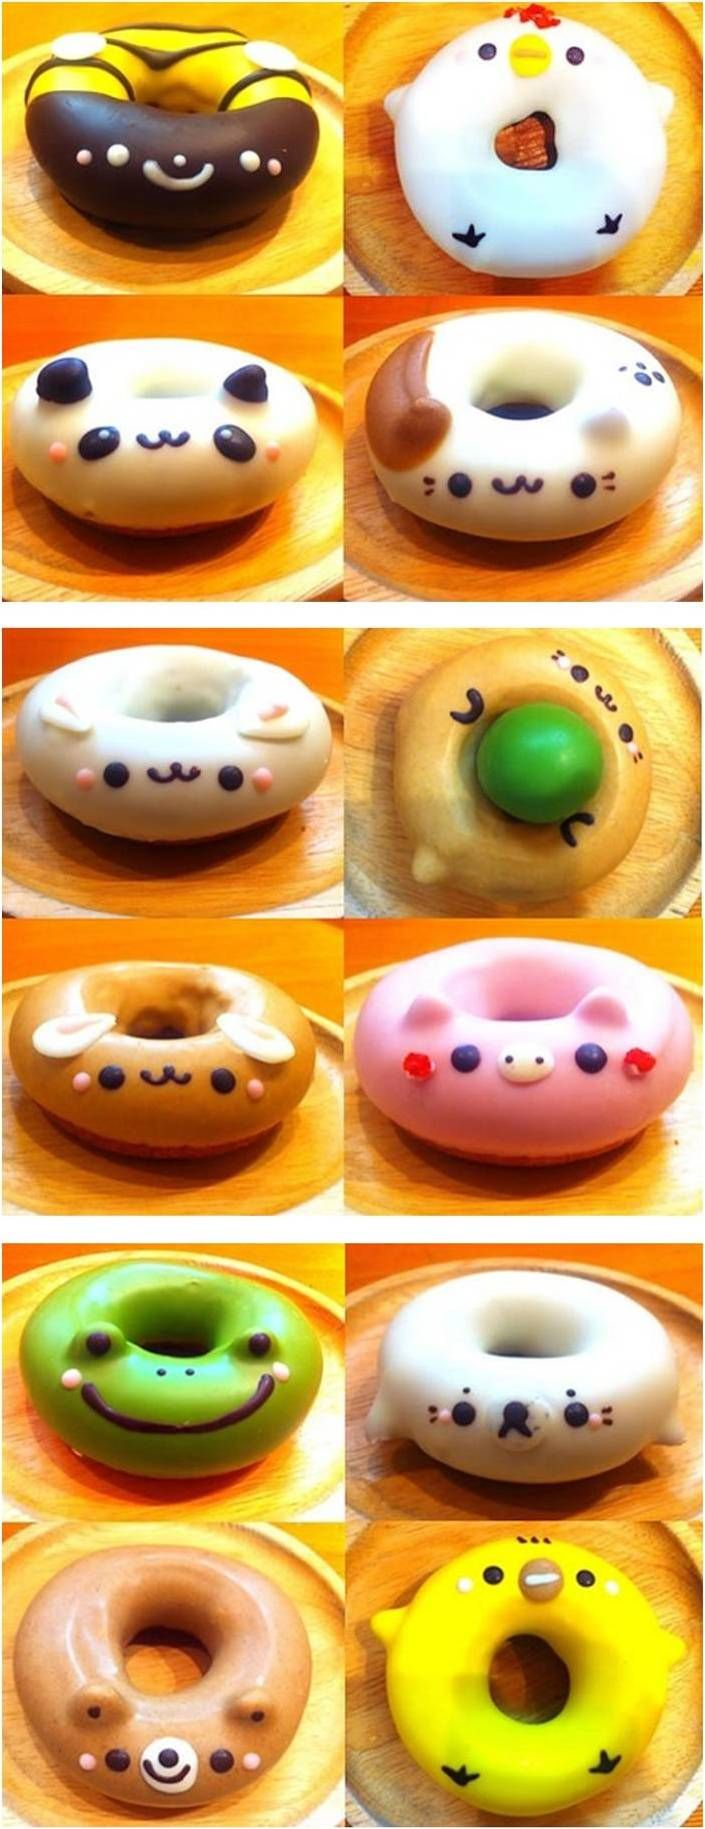 Japanese doughnuts... SO CUTE!!! I love the pig the chicken and the dog one!!!!!